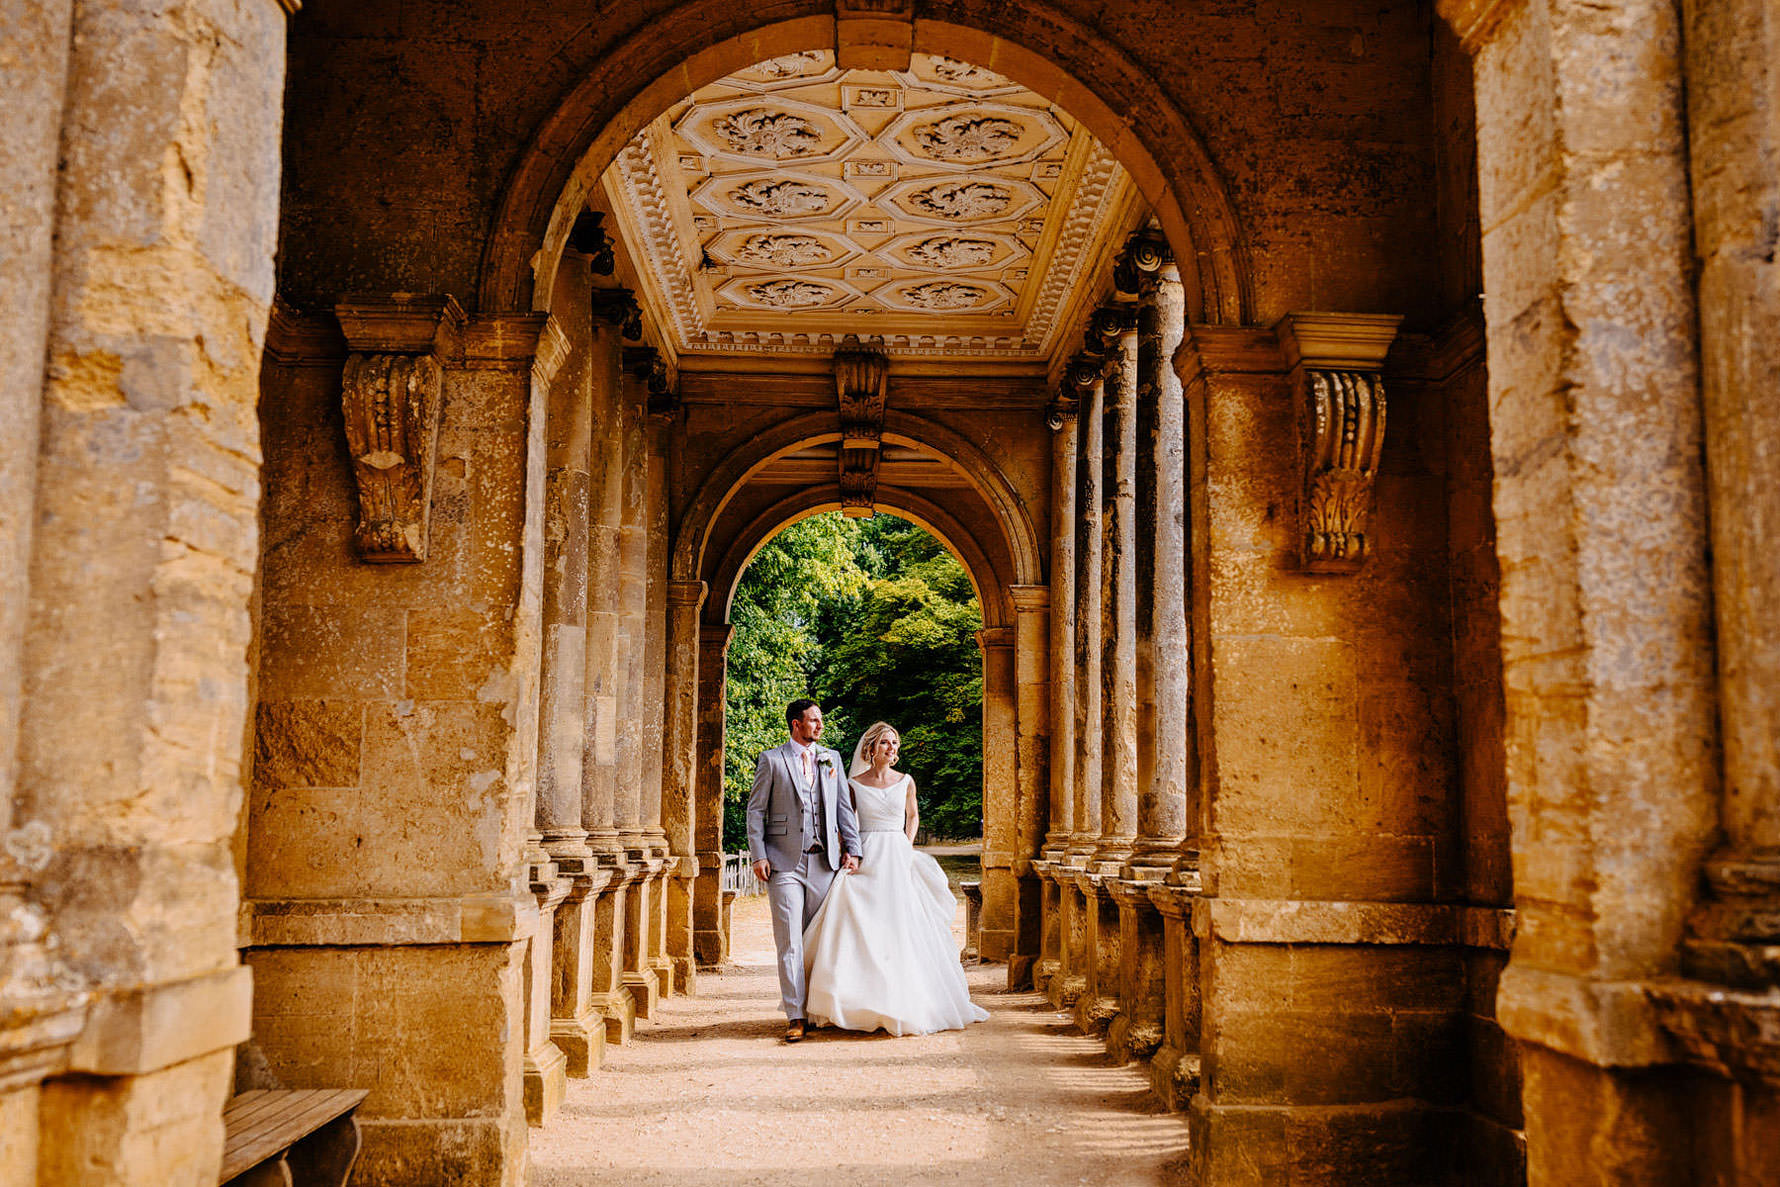 Stowe House wedding photography by enorthamptonshire wedding photographer Elliot patching